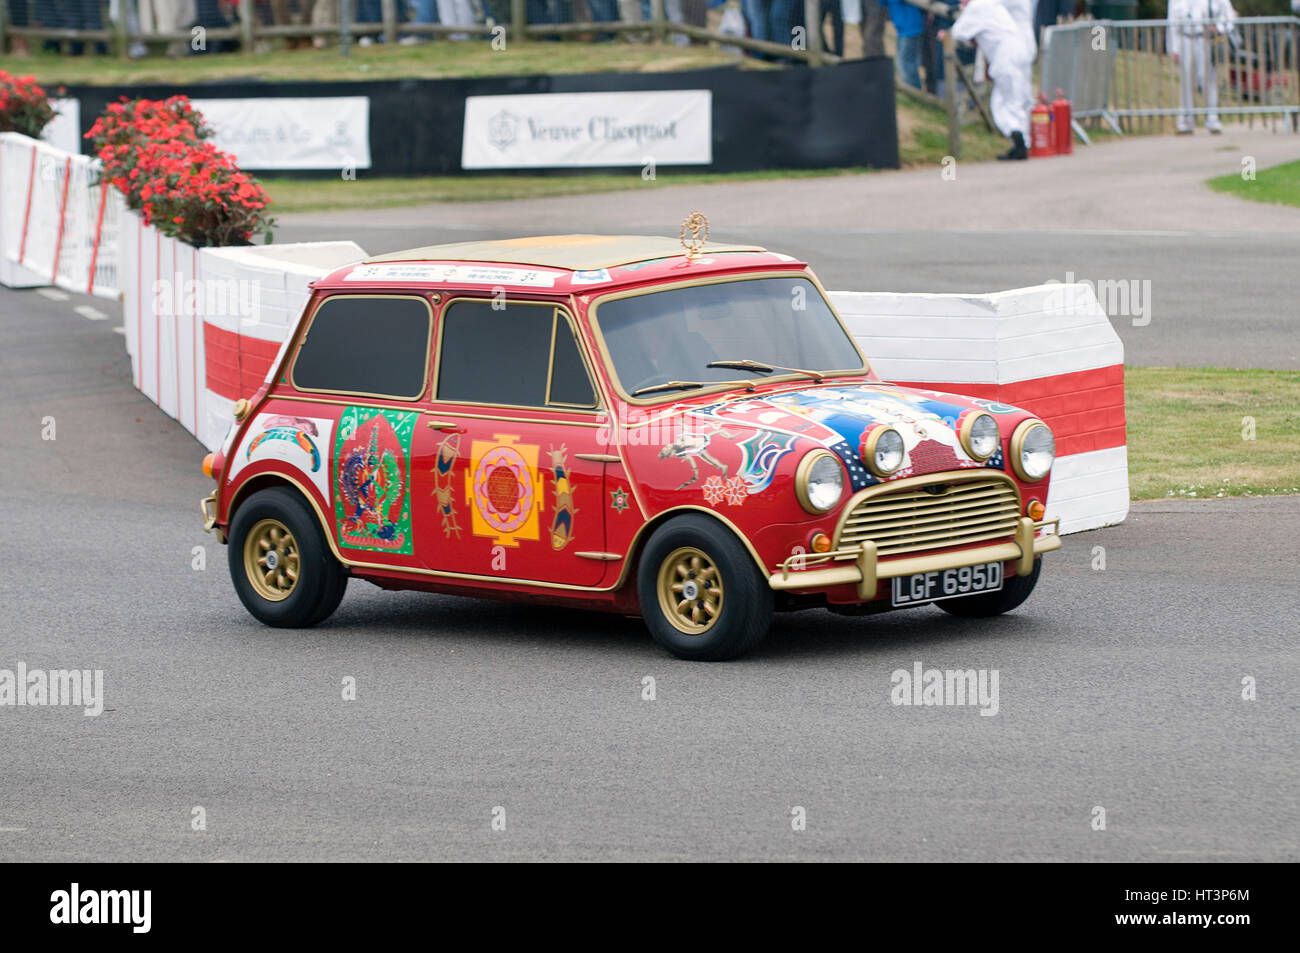 1969 Austin Mini Cooper S owned by Beatle George Harrison Artist: Unknown. - Stock Image